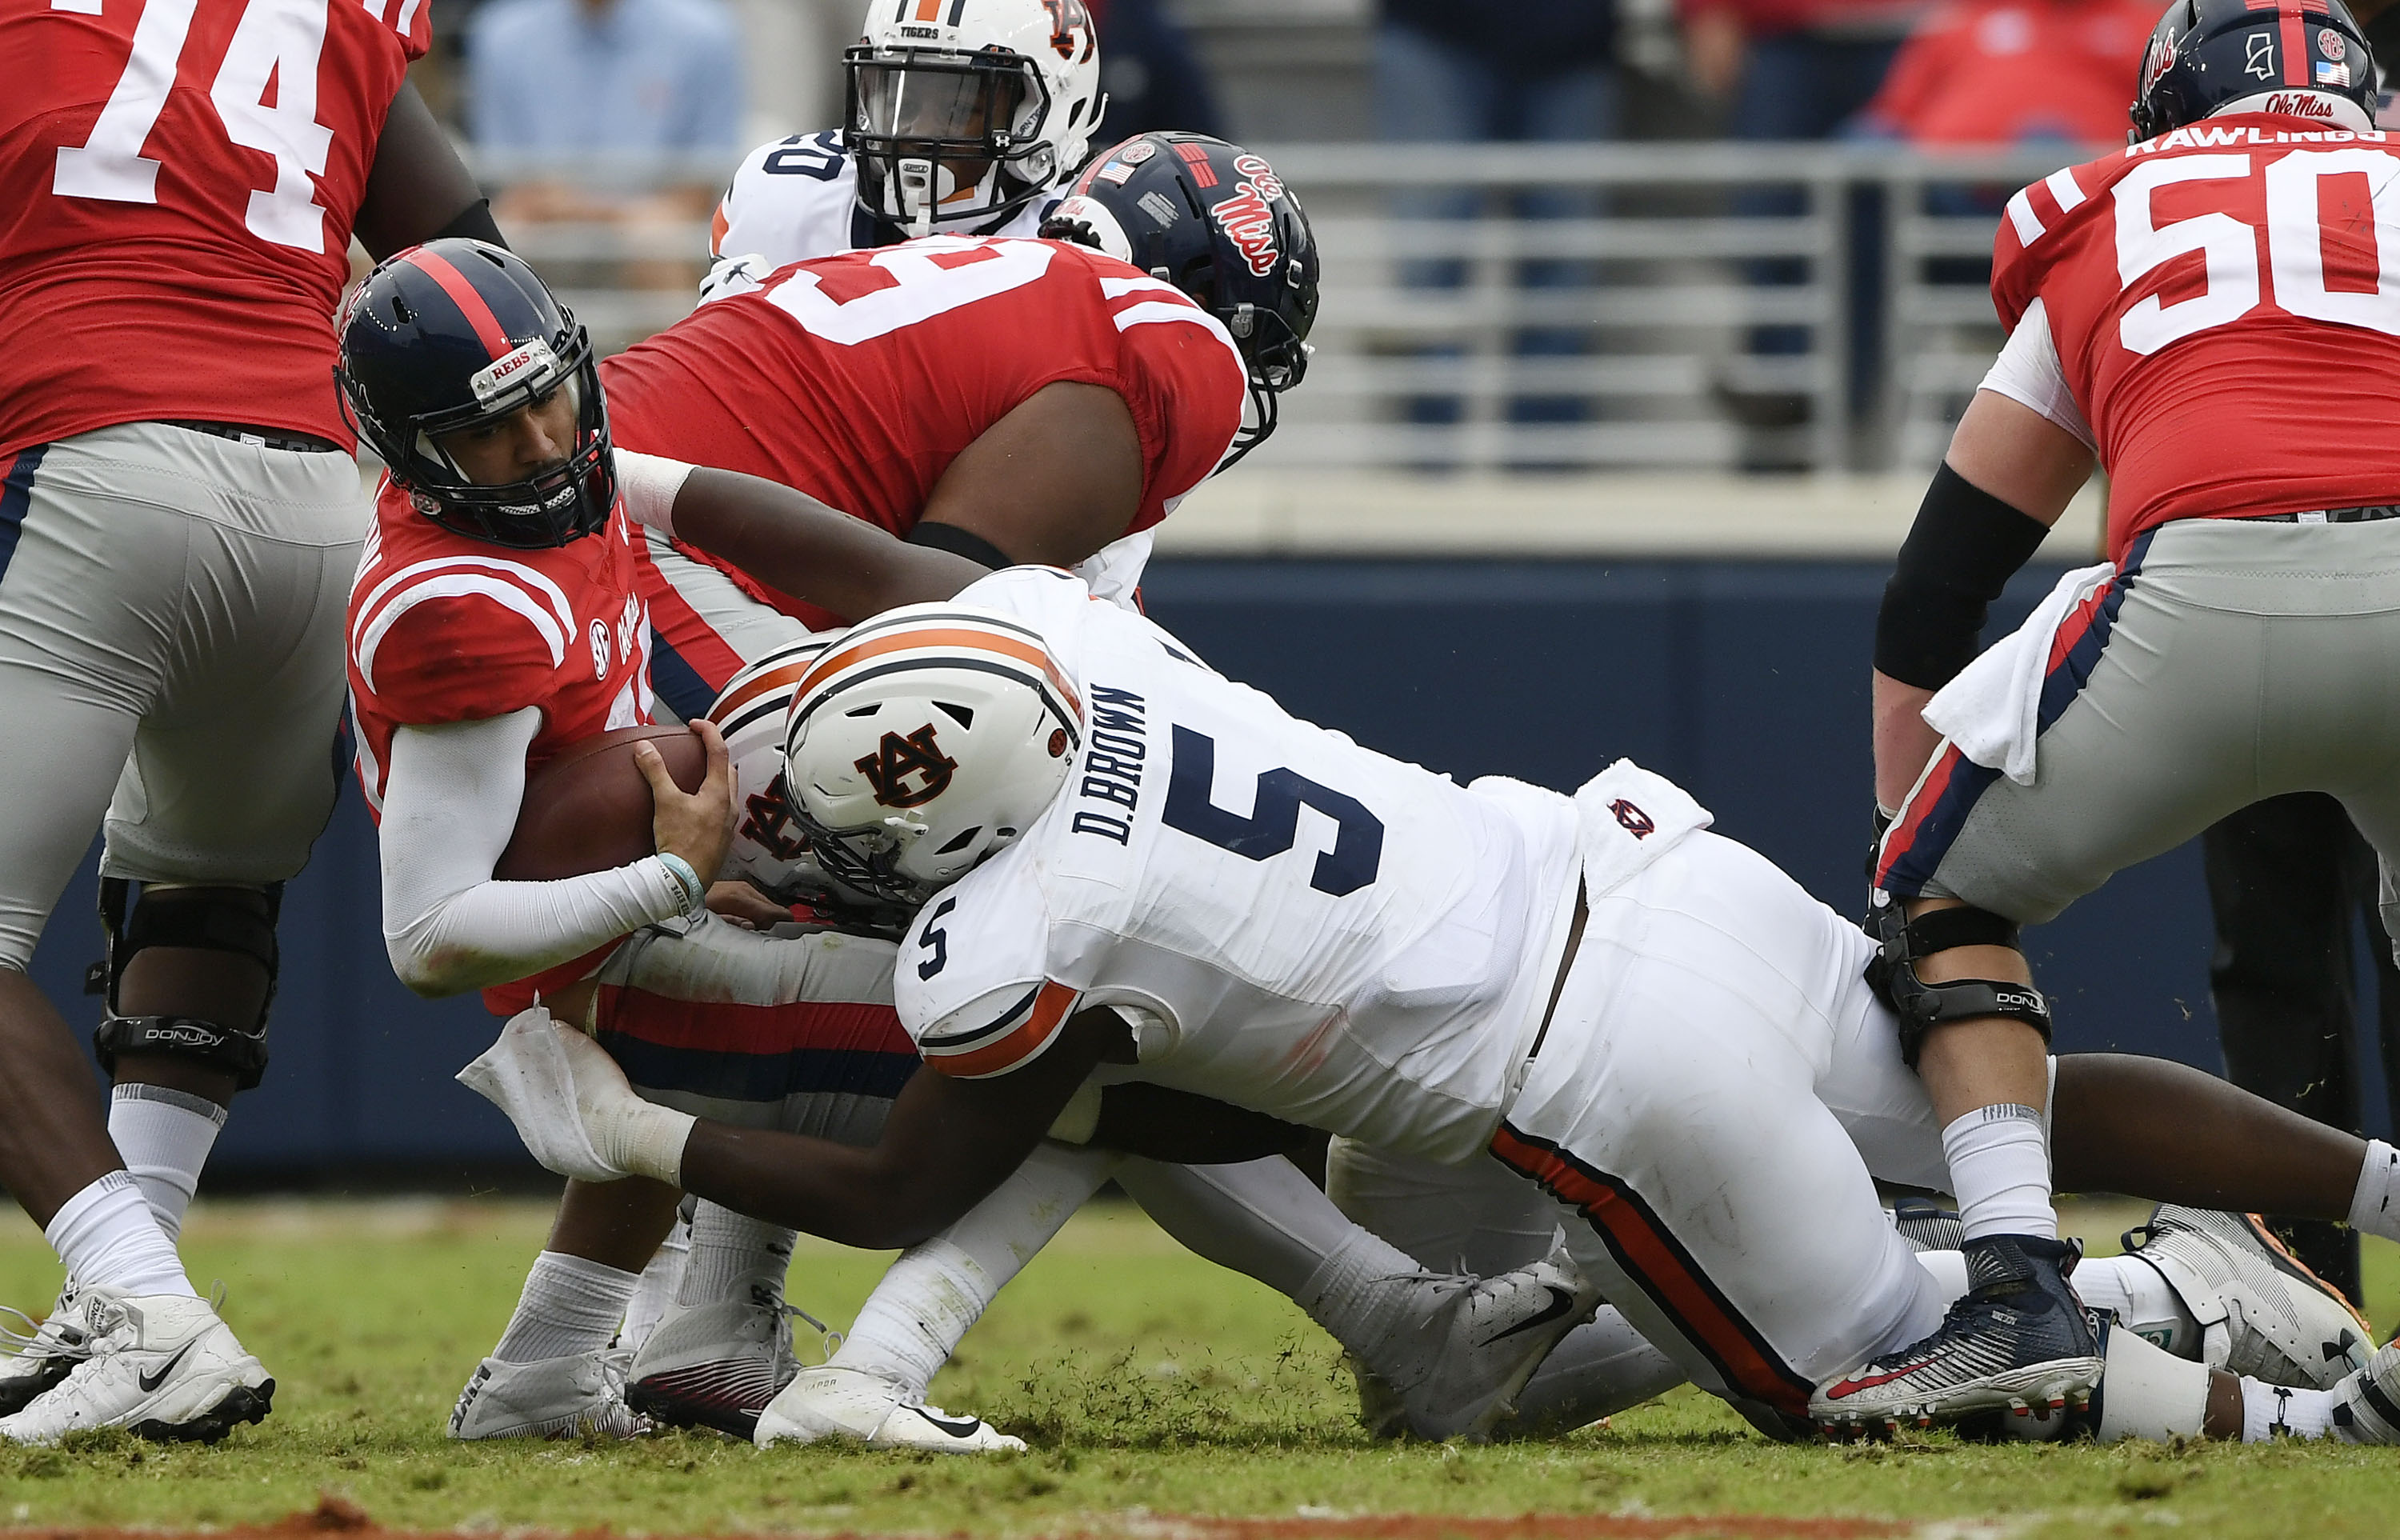 Nick Coe and Derrick Brown make a stop on 4th down in the second half. Auburn at Ole Miss on Saturday, Oct. 20, 2018 in Oxford, MS. Todd Van Emst/AU Athletics